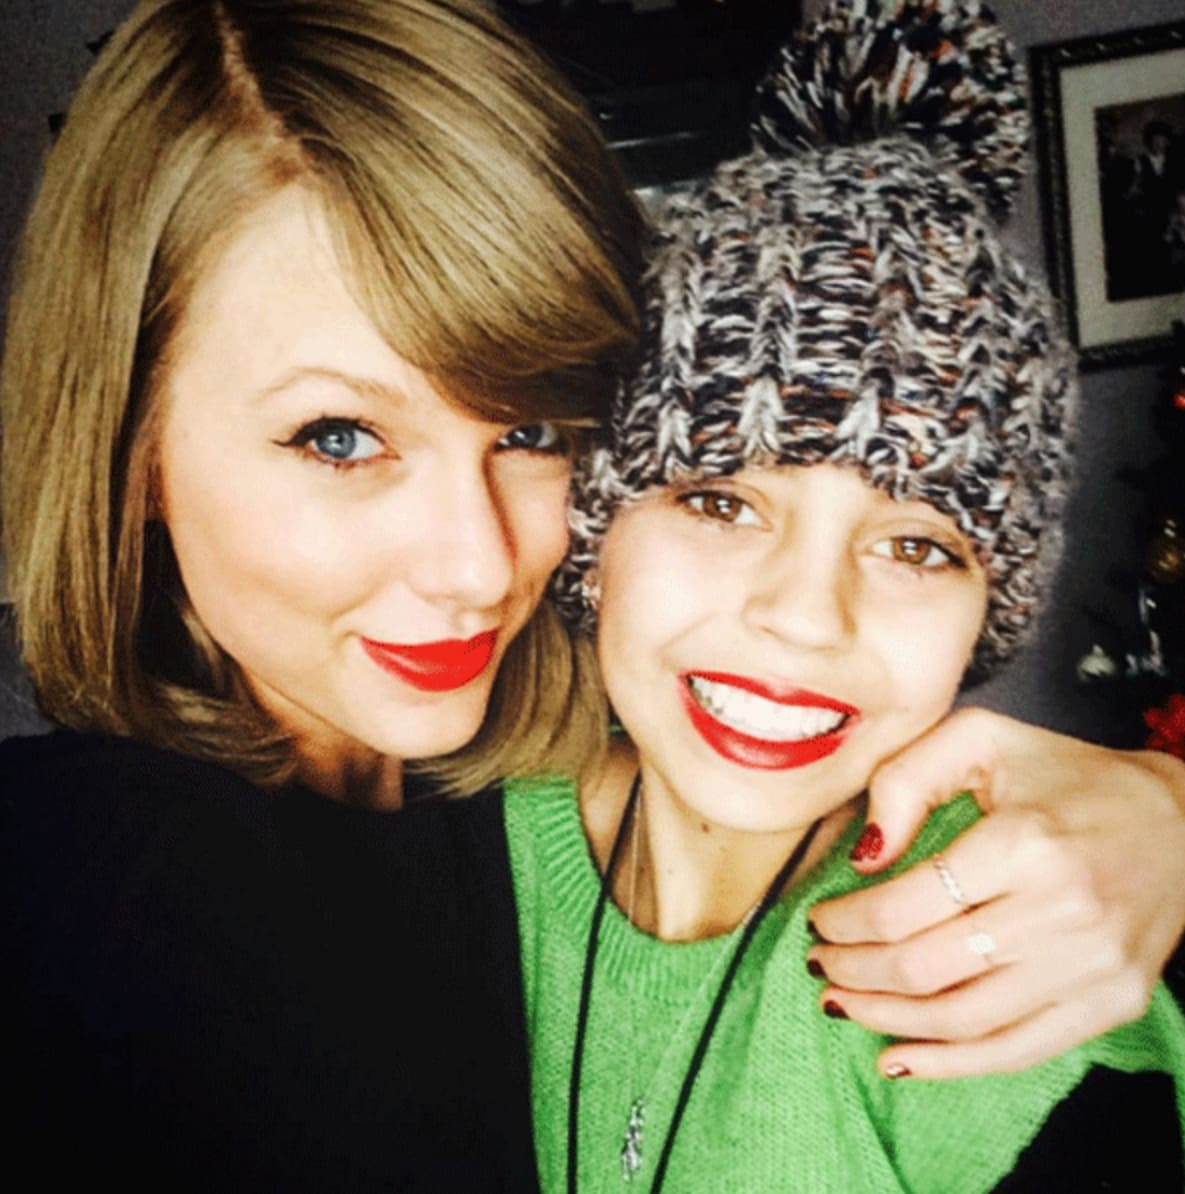 Taylor swift stuns cancer patient see the sweet pics the taylor swift stuns cancer patient see the sweet pics the hollywood gossip m4hsunfo